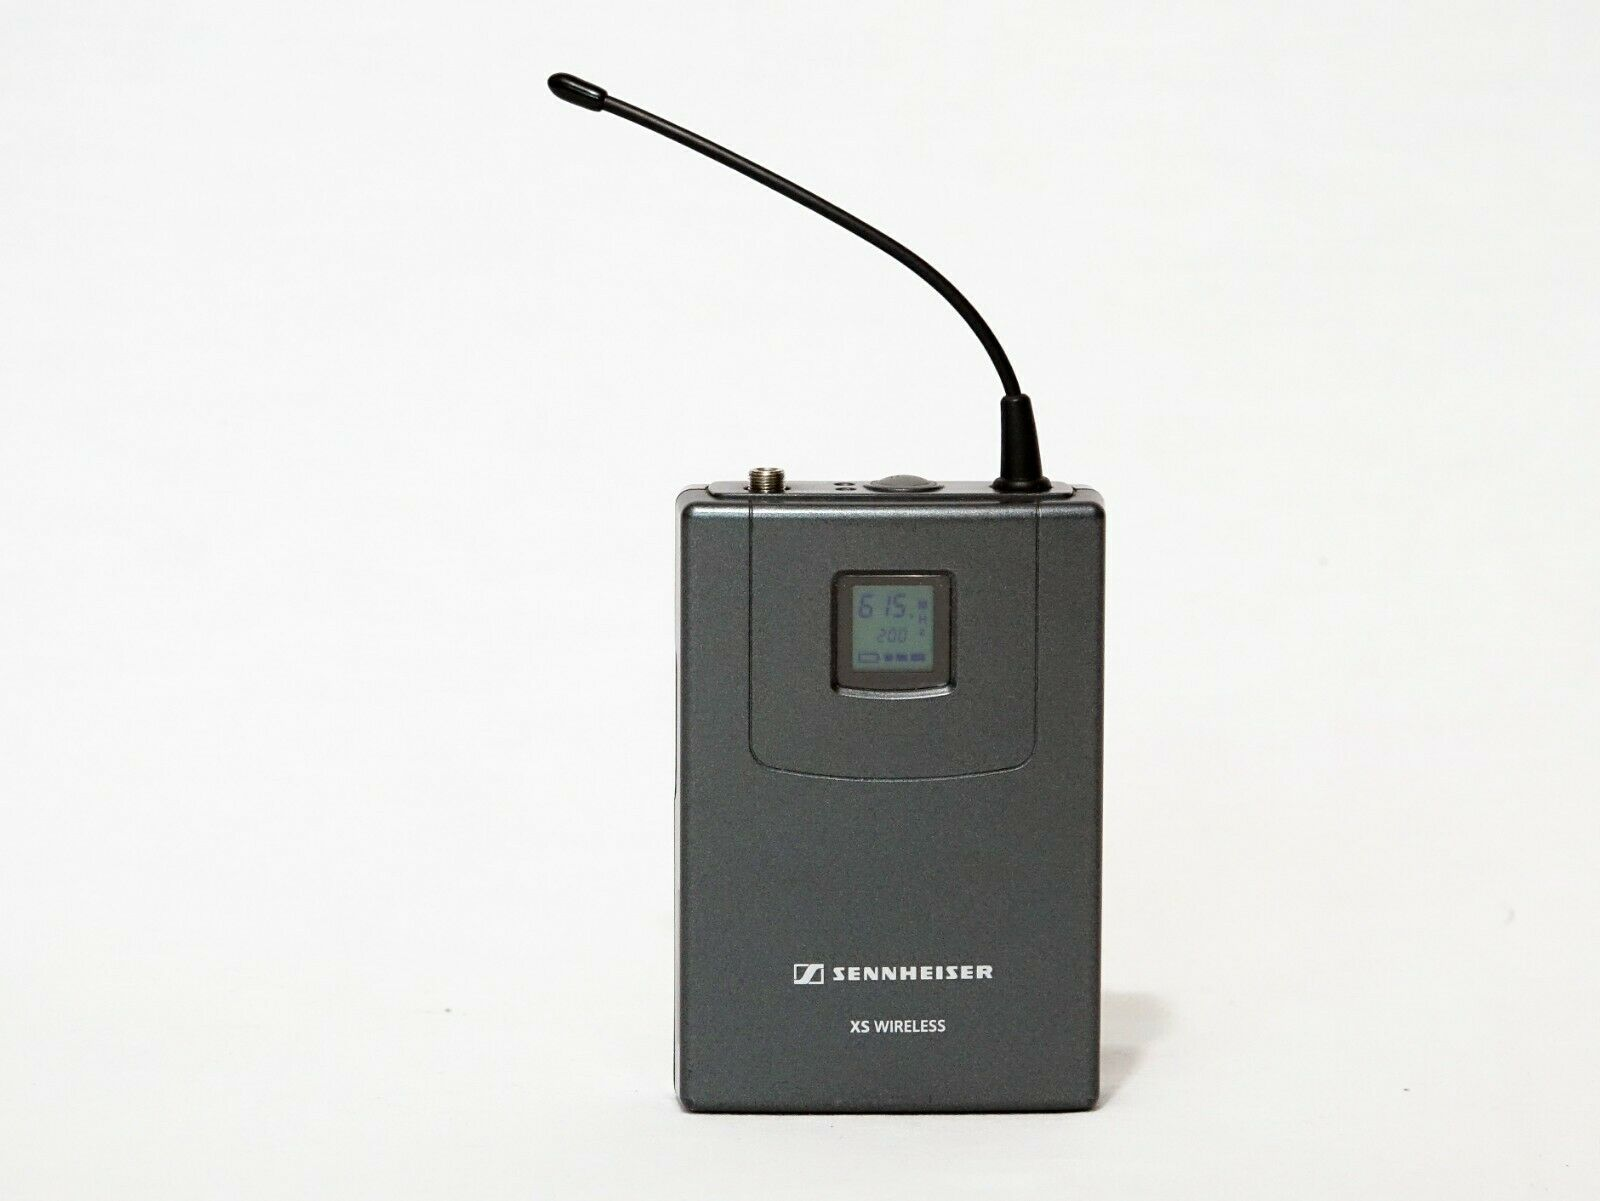 Sennheiser SK 20 wireless transmitter 614 - 638 MHz